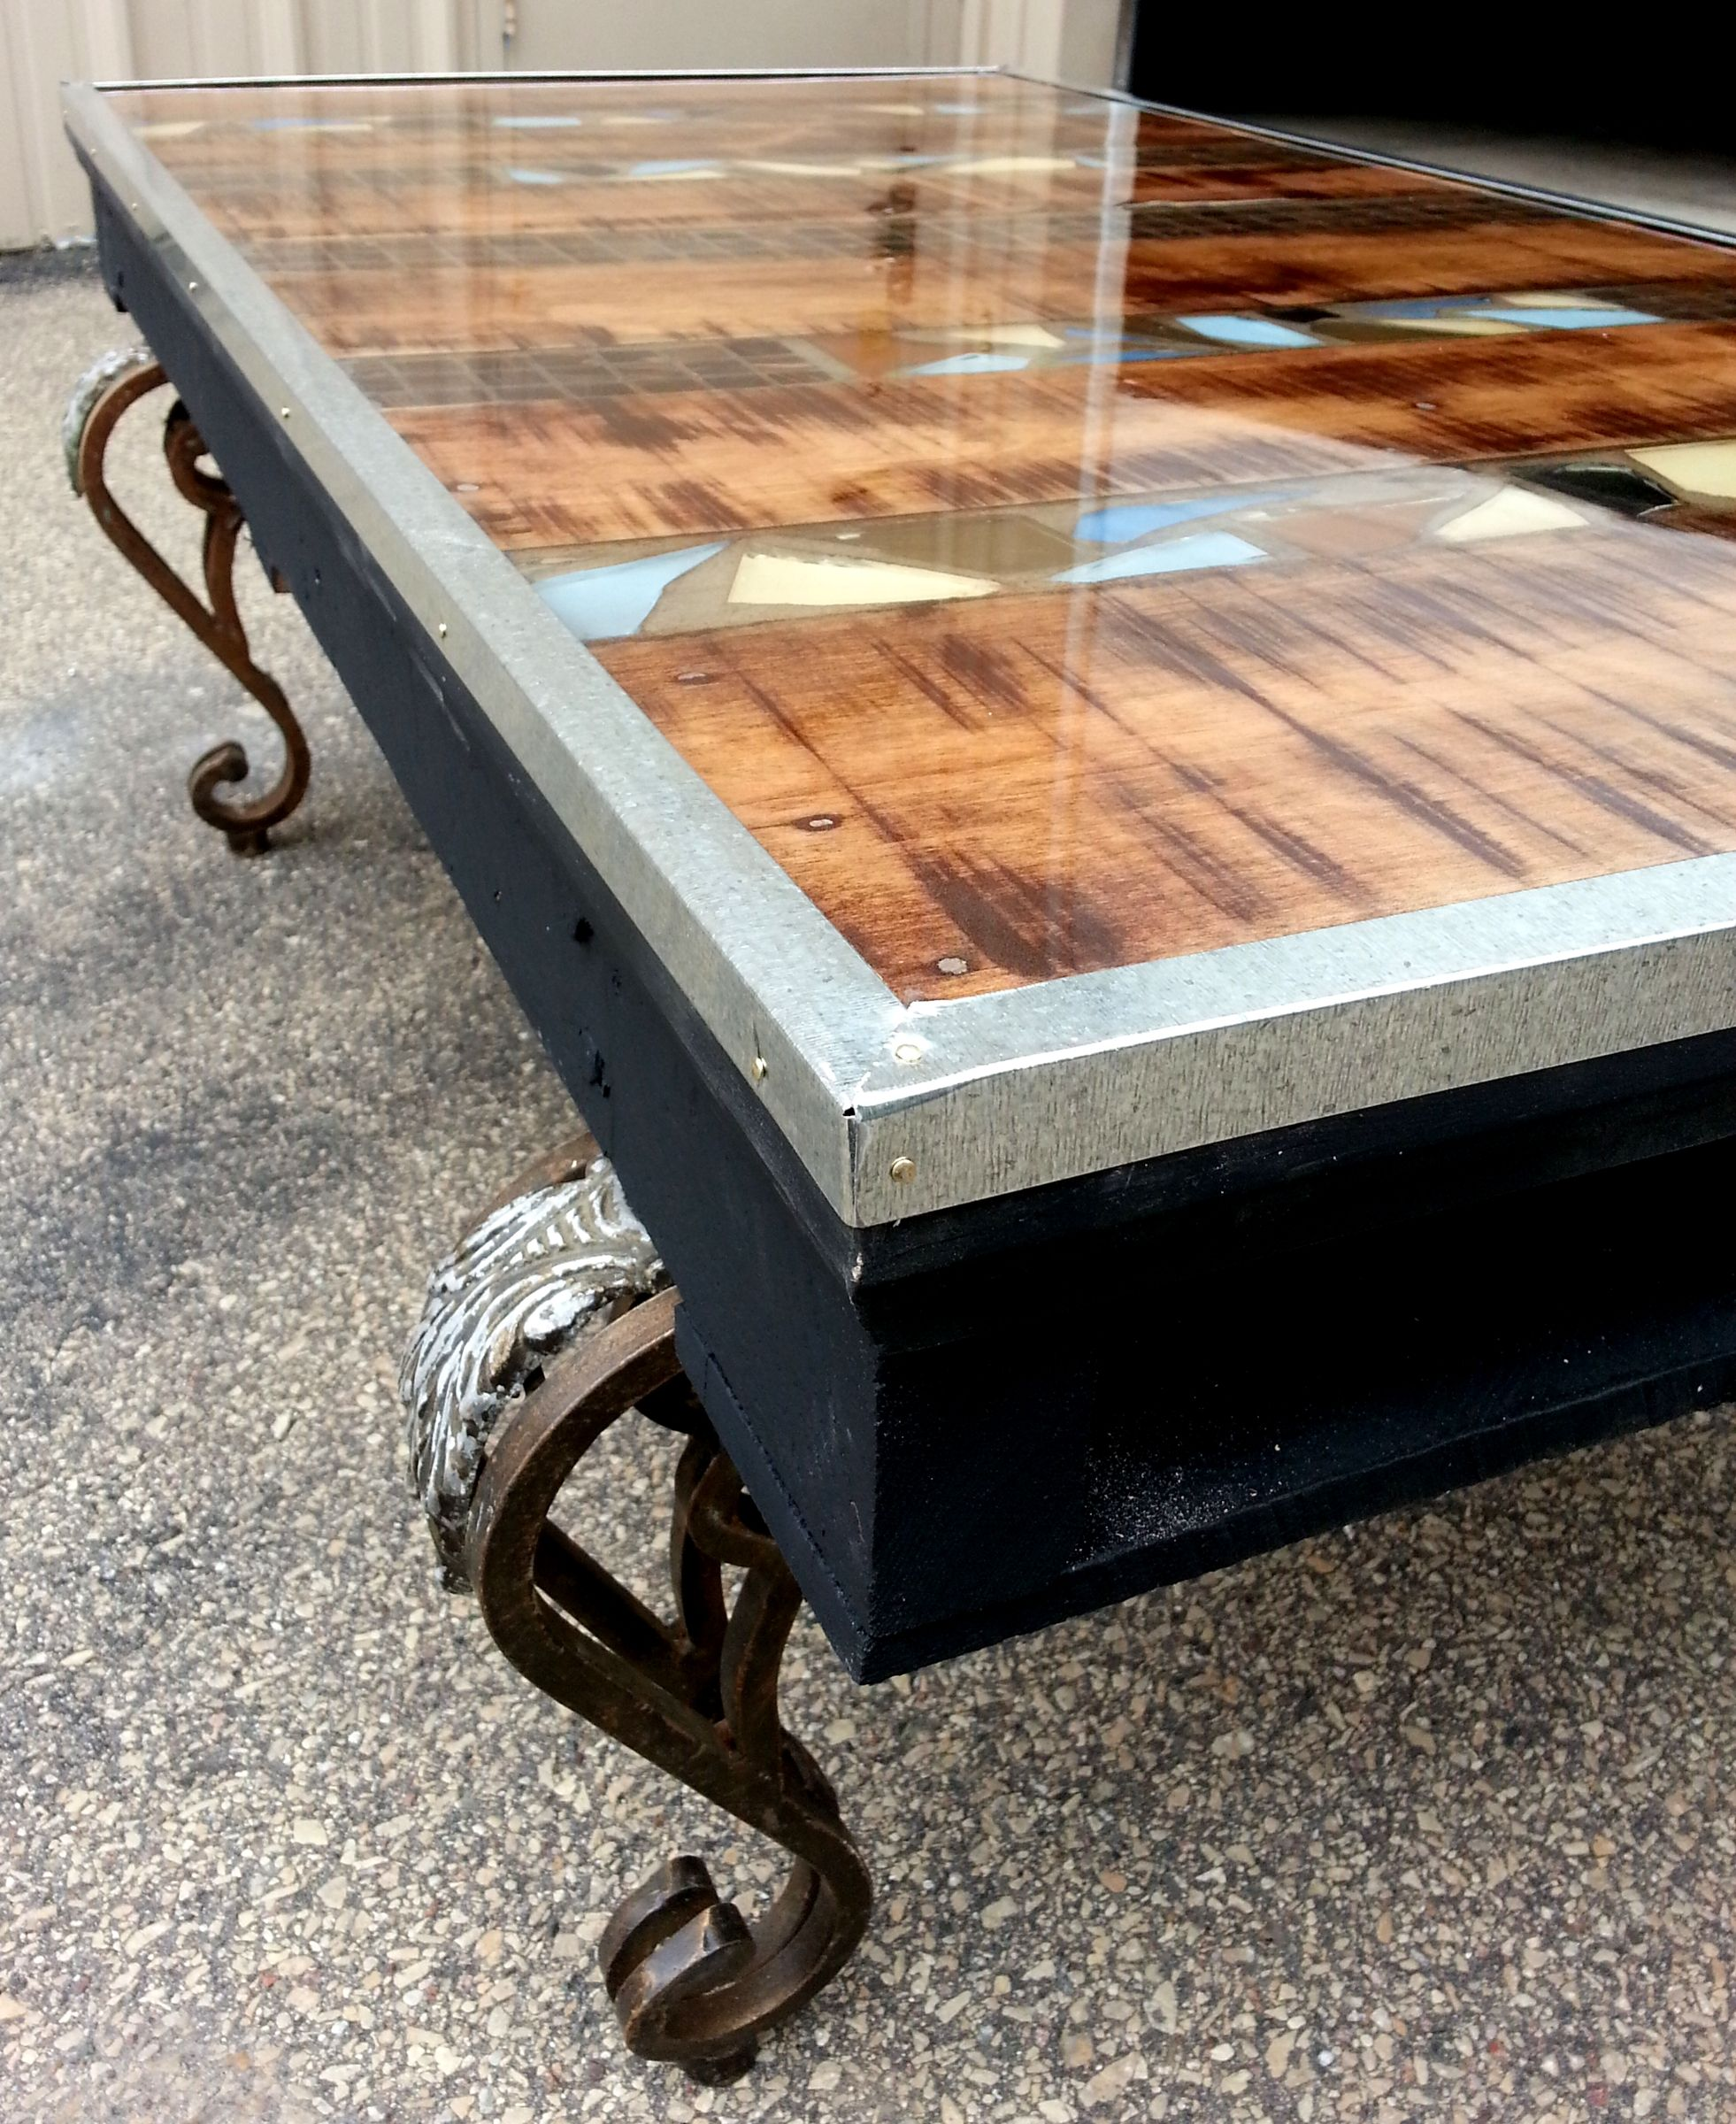 Decorative 48x 28 coffee table created with the use of a pallet decorative coffee table created with the use of a pallet broken pieces of ceramic tile repurposed metal legs from a different coffee table epoxy coating dailygadgetfo Image collections